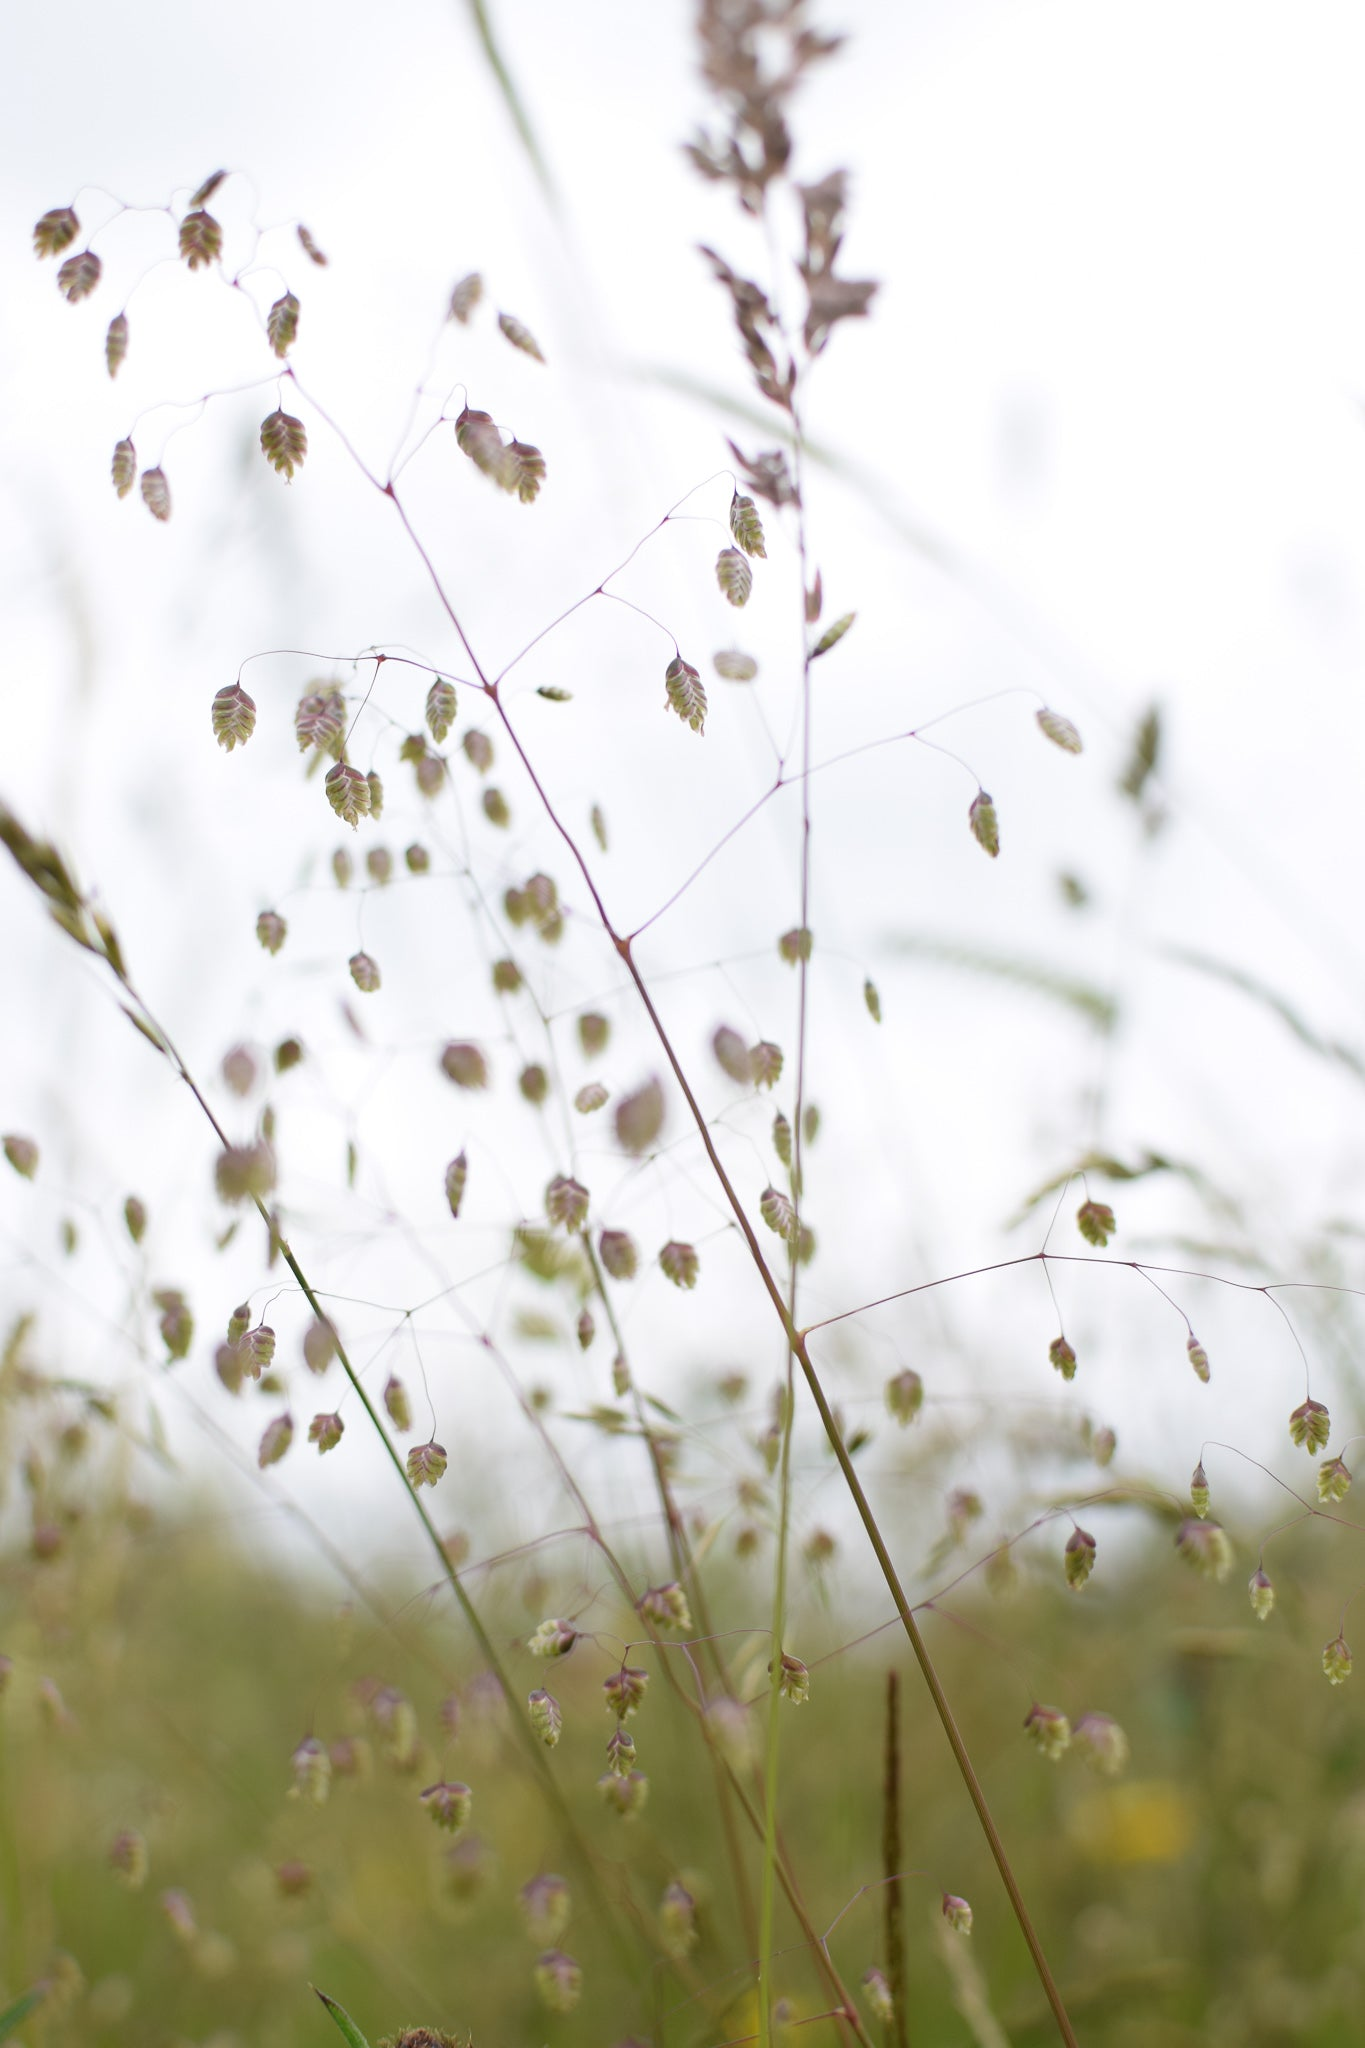 quaking grass at Eades Meadow, Worcester Wildlife Trust ancient wildflower meadow